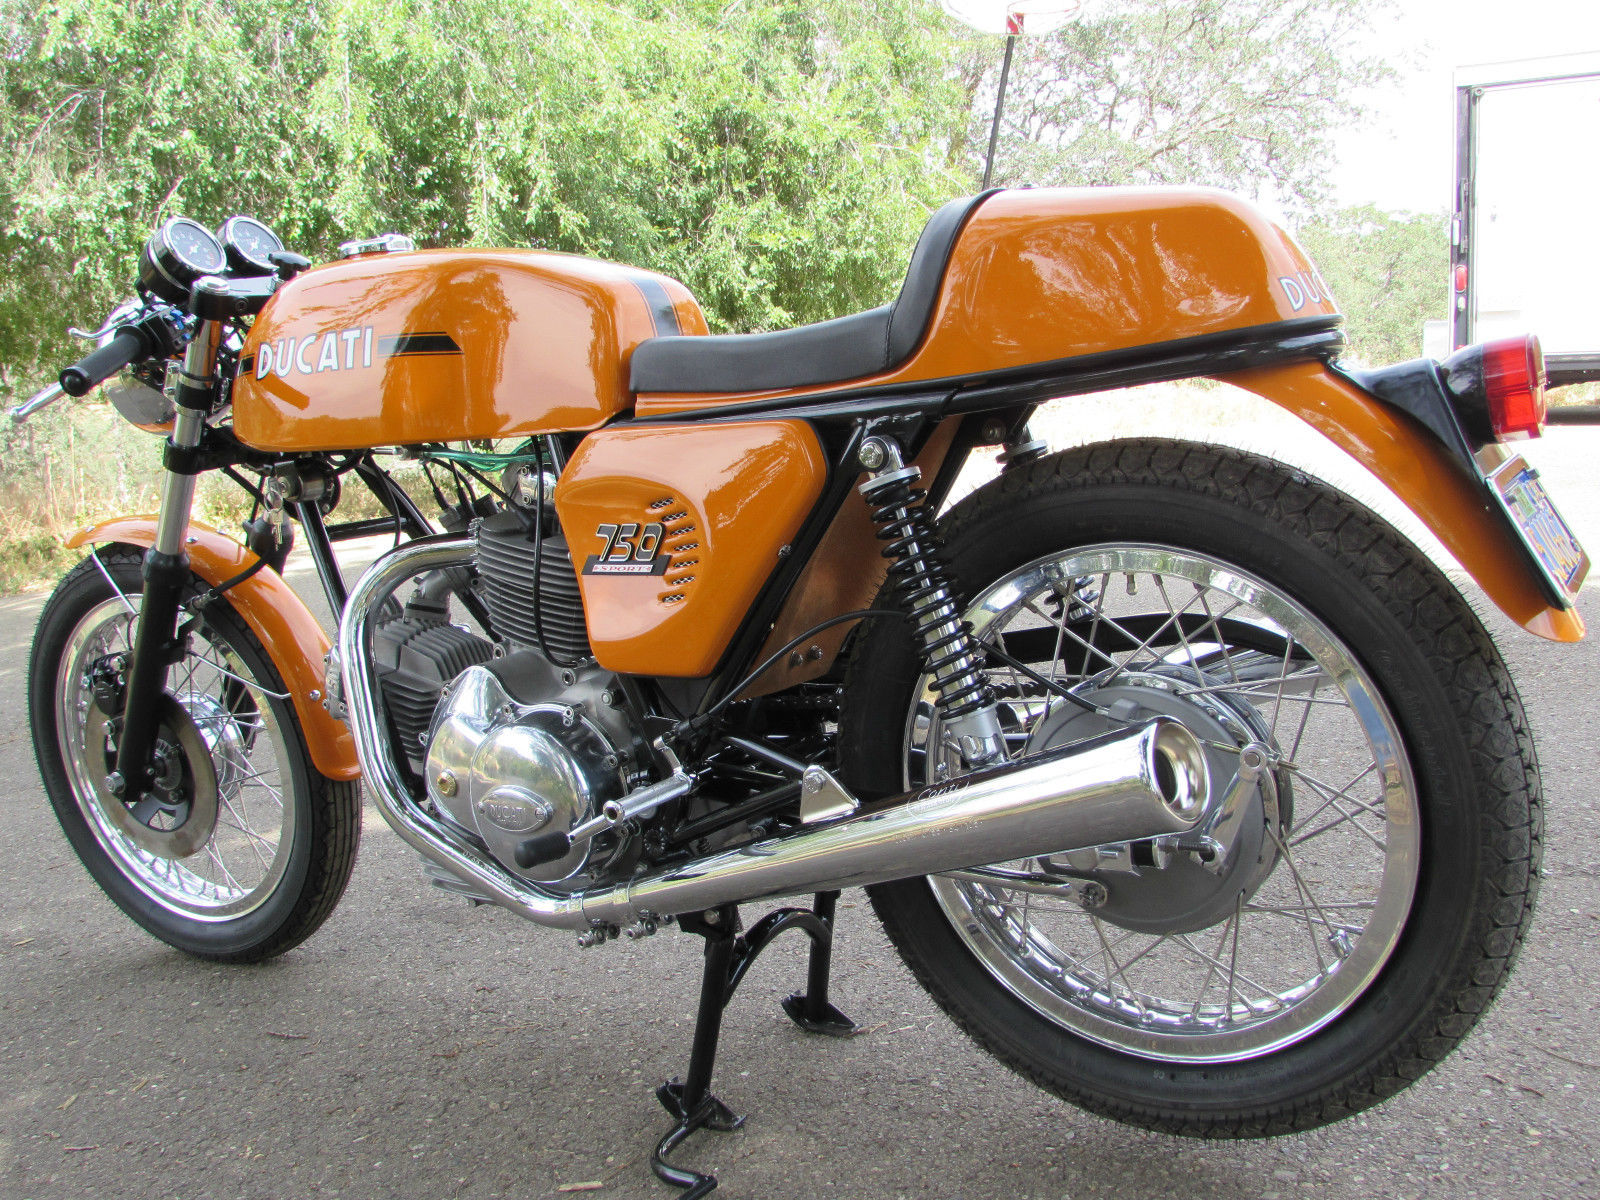 Ducati 750 SS images #9962